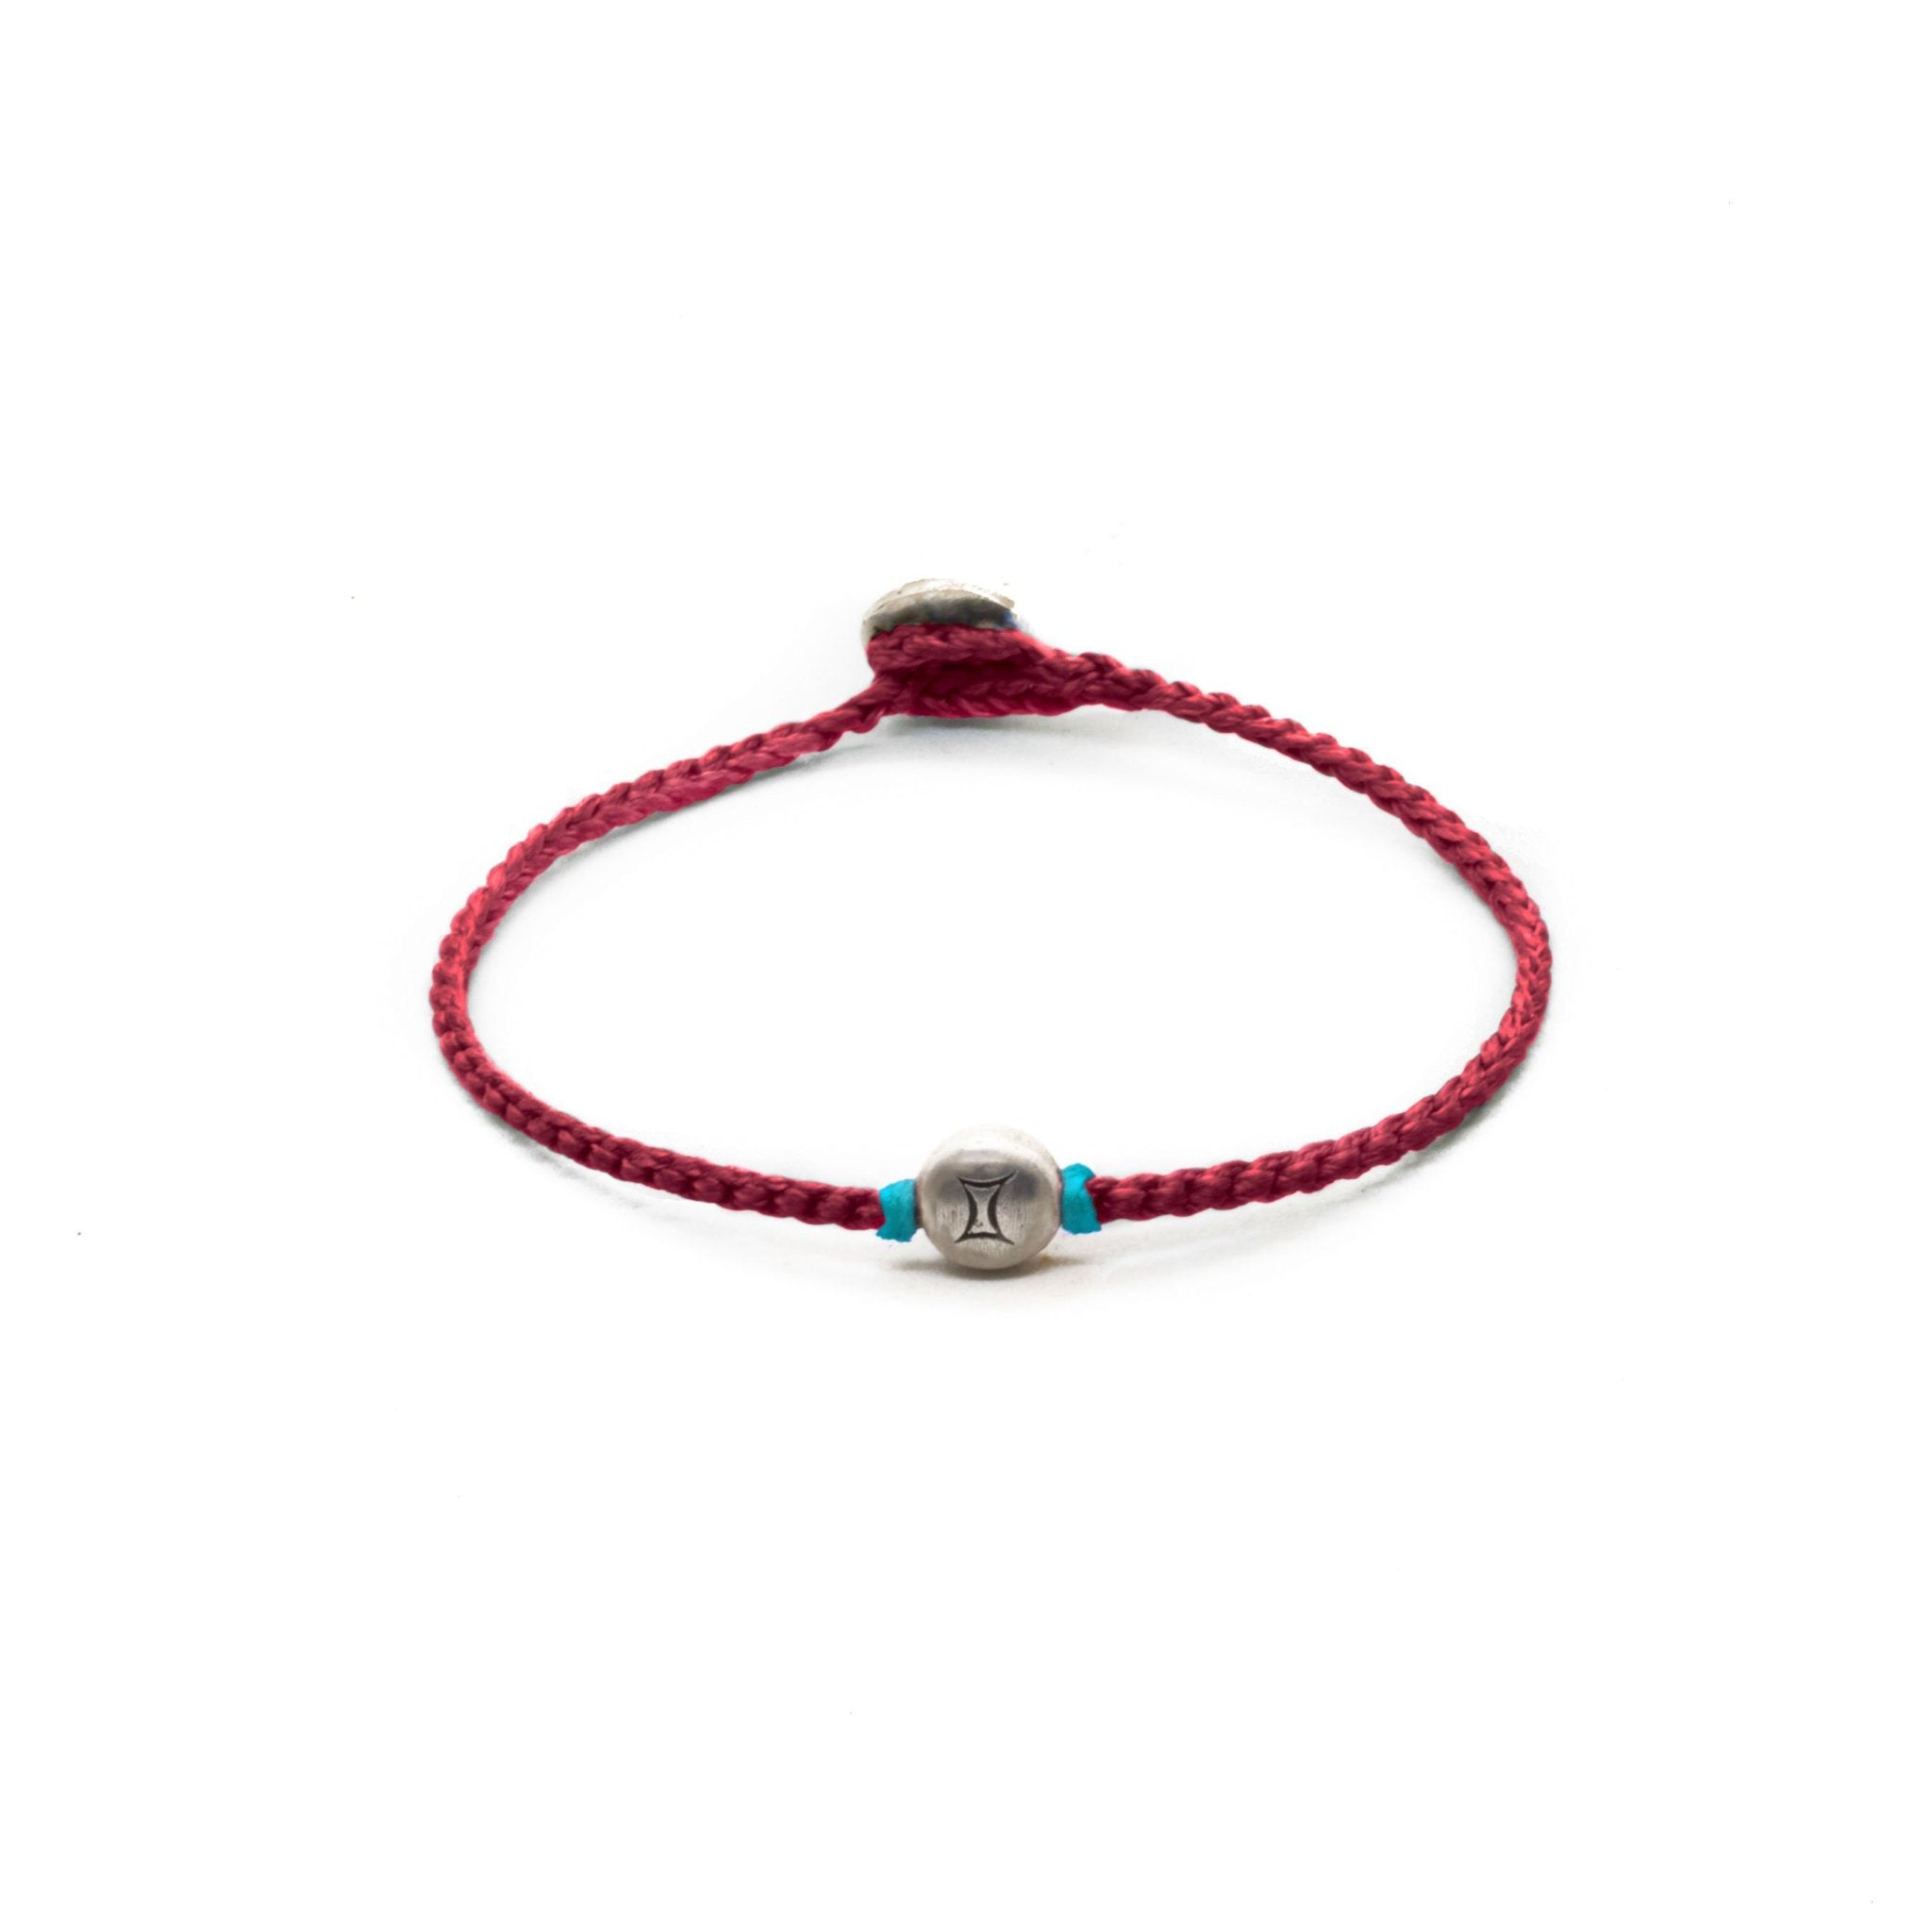 Silver Gemini zodiac sign bracelet with red hand braided chain.